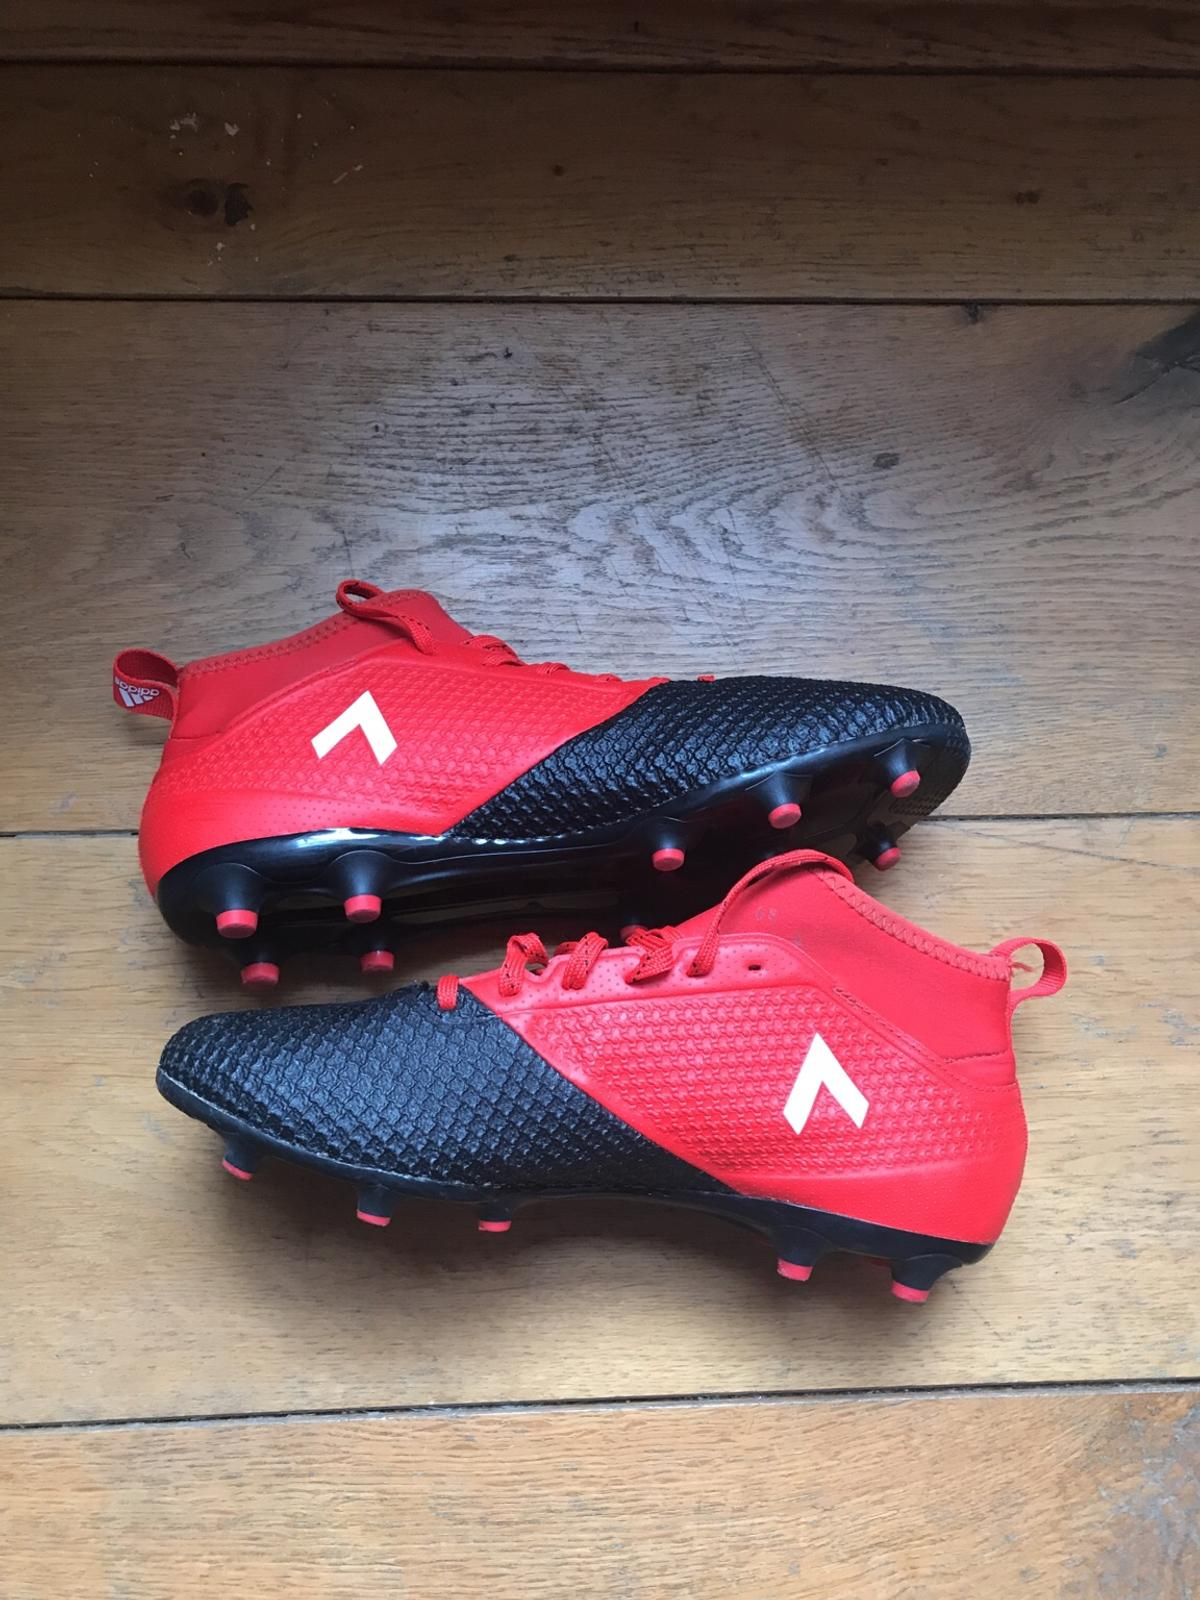 premium selection 942f5 30bec Adidas ace football boots